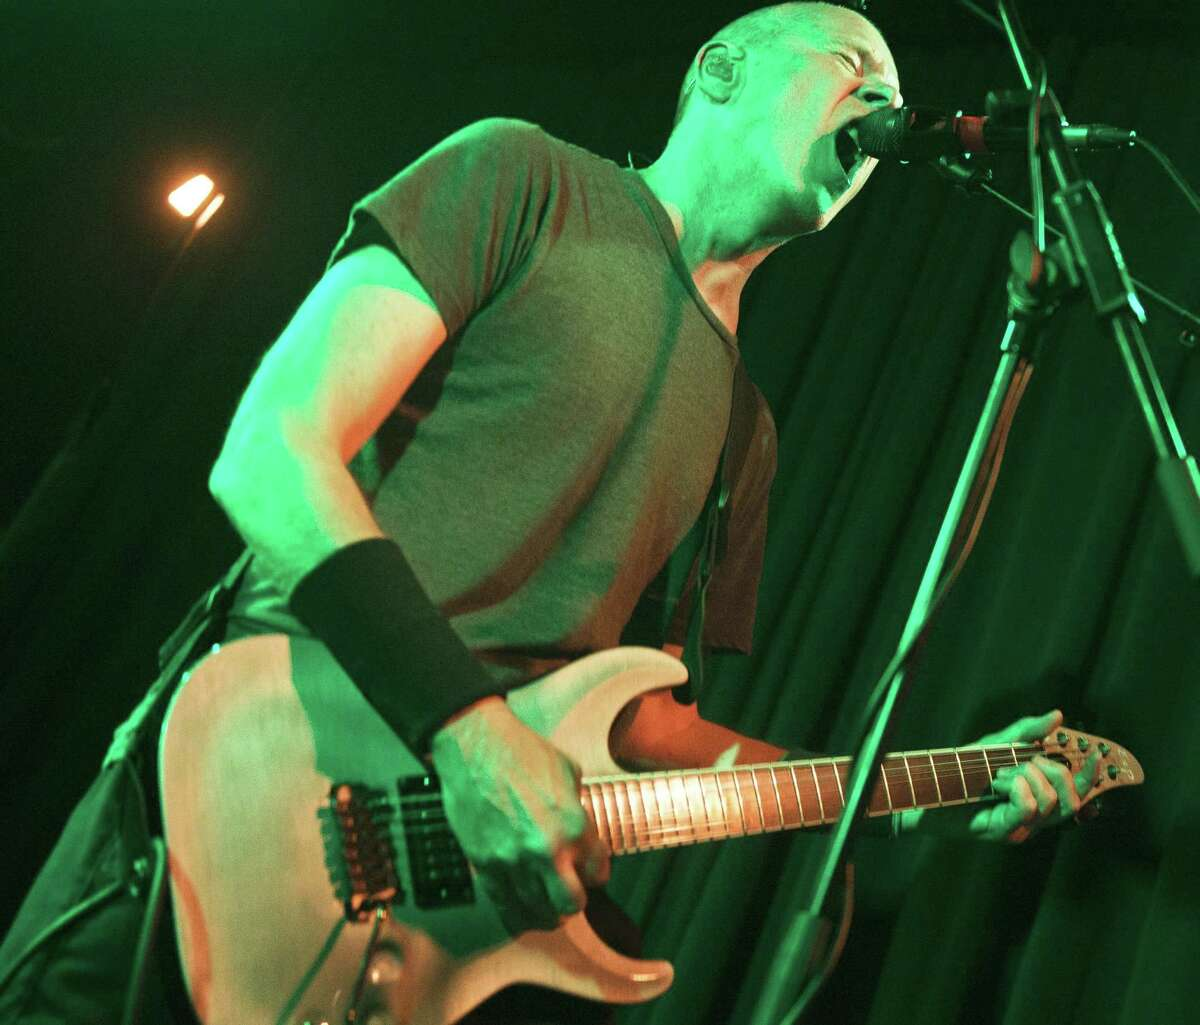 New York metal bands Helmet and Prong, which both emerged in the '90s from New York's storied CBGB club, are on the road together. Featuring guitar great Page Hamilton (pictured), Helmet's 1992 album